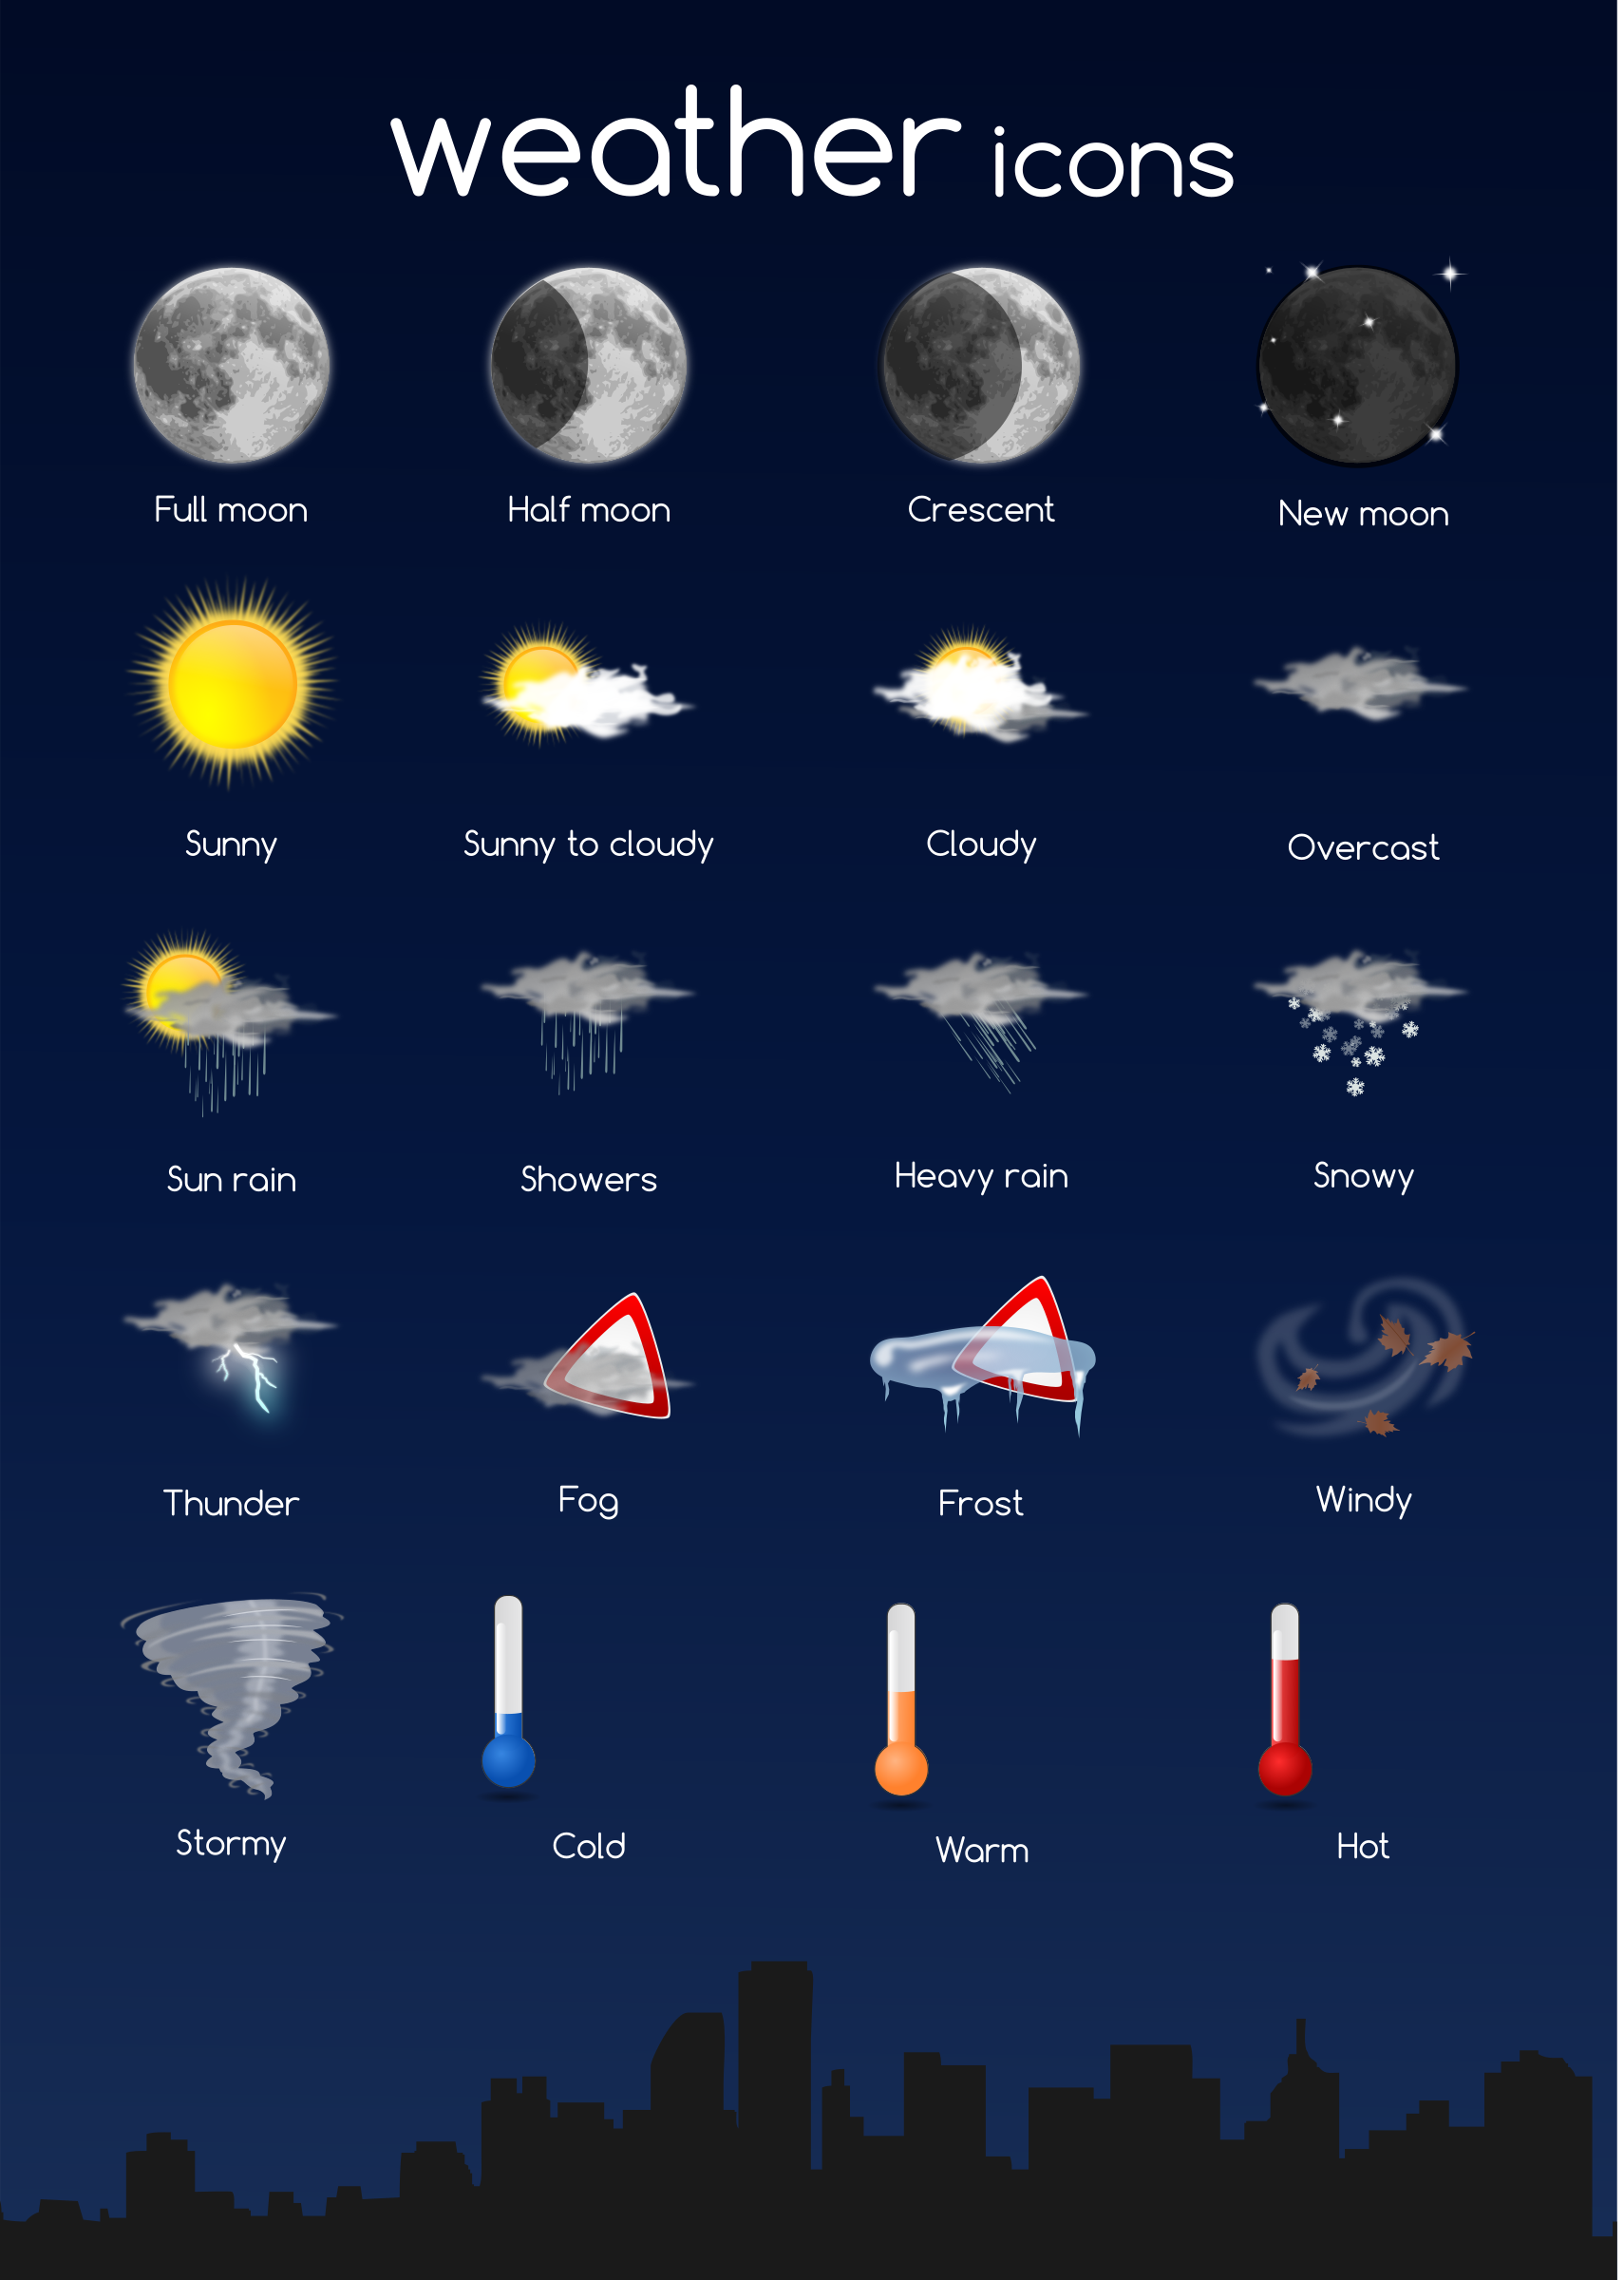 weather icon - complete set by gnokii